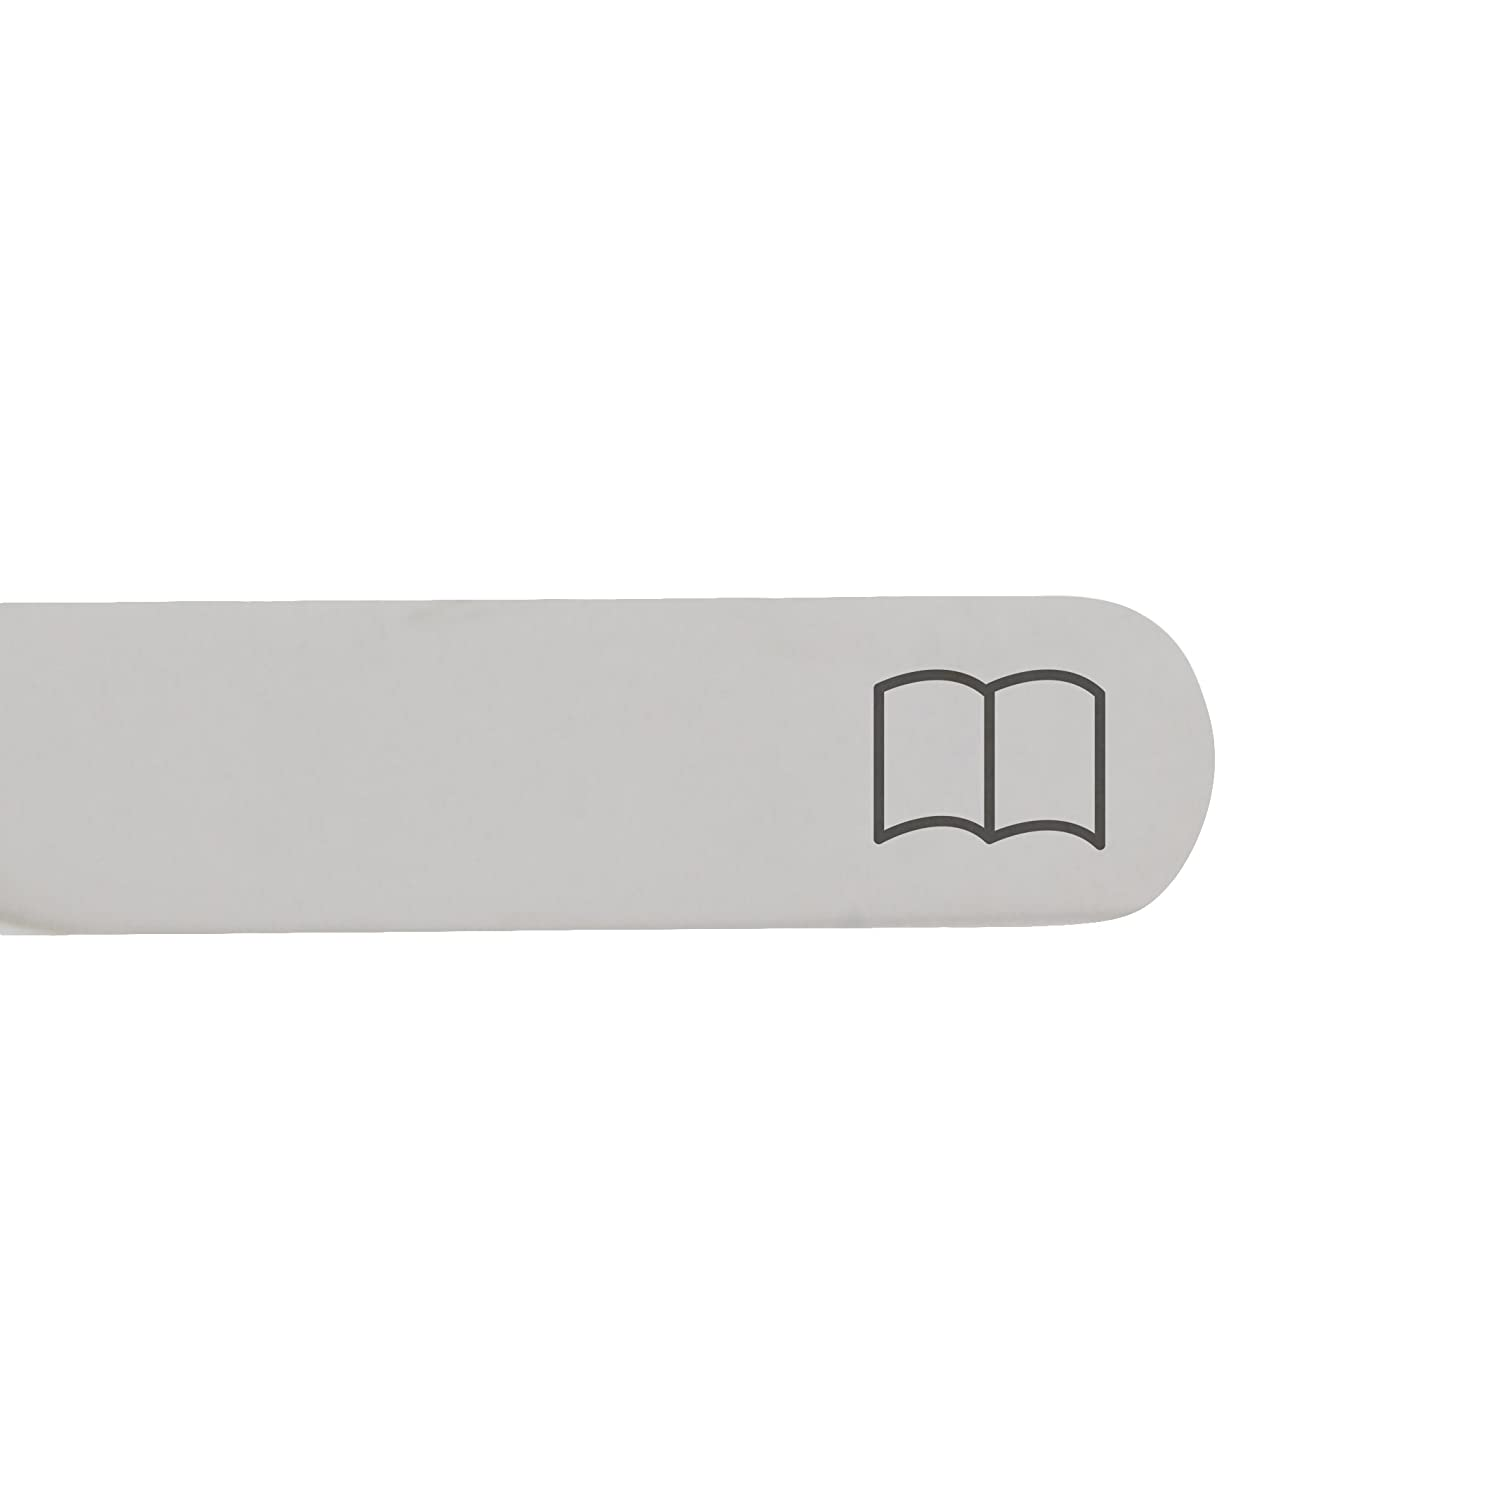 MODERN GOODS SHOP Stainless Steel Collar Stays With Laser Engraved Open Book Design 2.5 Inch Metal Collar Stiffeners Made In USA